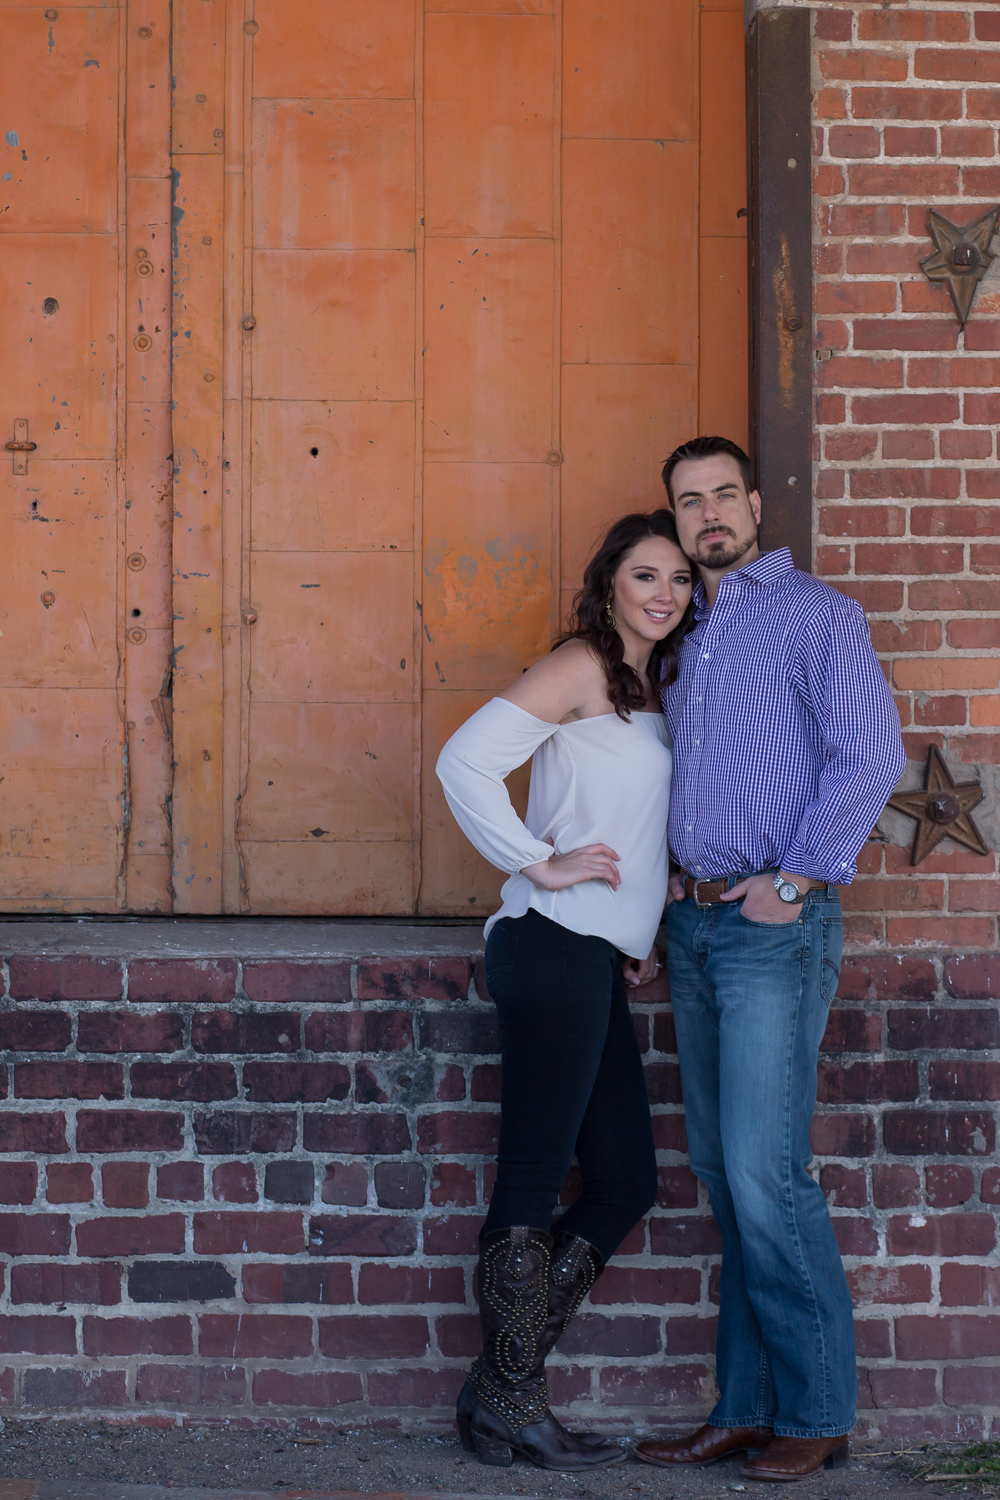 www.brownsphotoart.com  @Brown's Photography